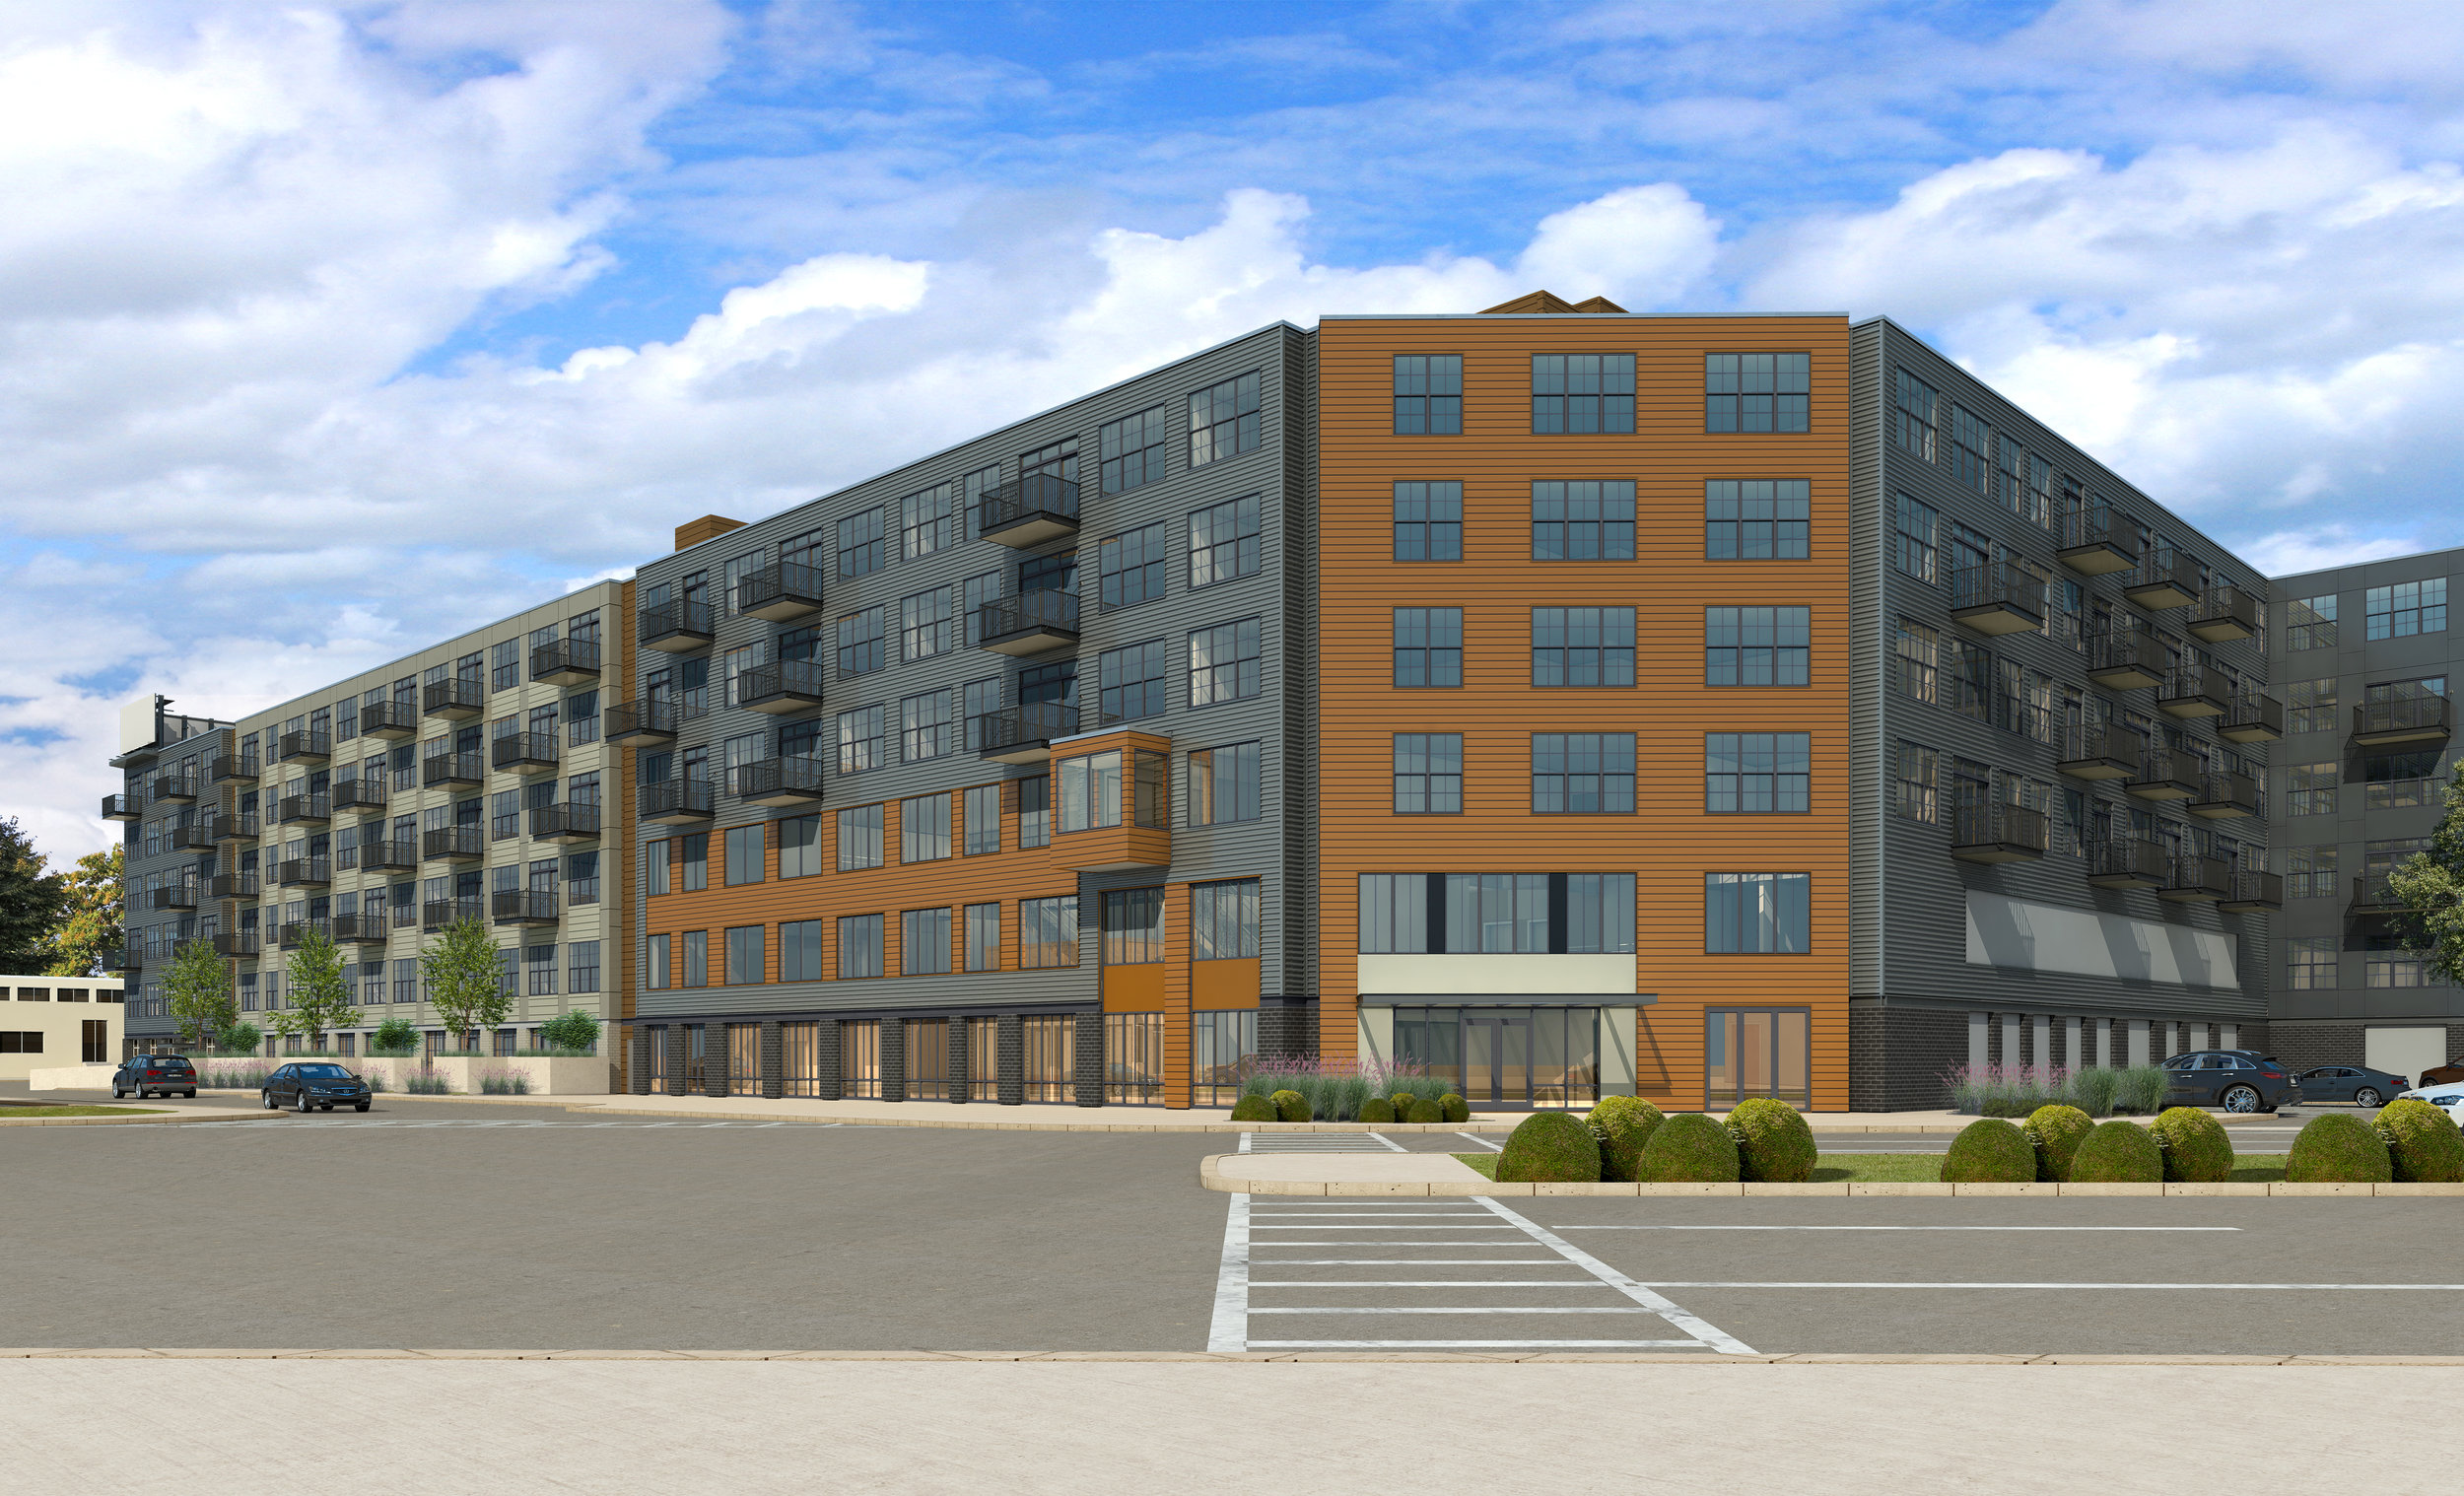 Apartments/Condominiums - Projects included locations in Avon, Braintree, Brockton, Everett, Franklin, Lowell, Medford, Milford, and Tewksbury, Massachusetts and in Manchester, New Hampshire. The projects ranged in size from fewer than 10 units to more than 300 units.